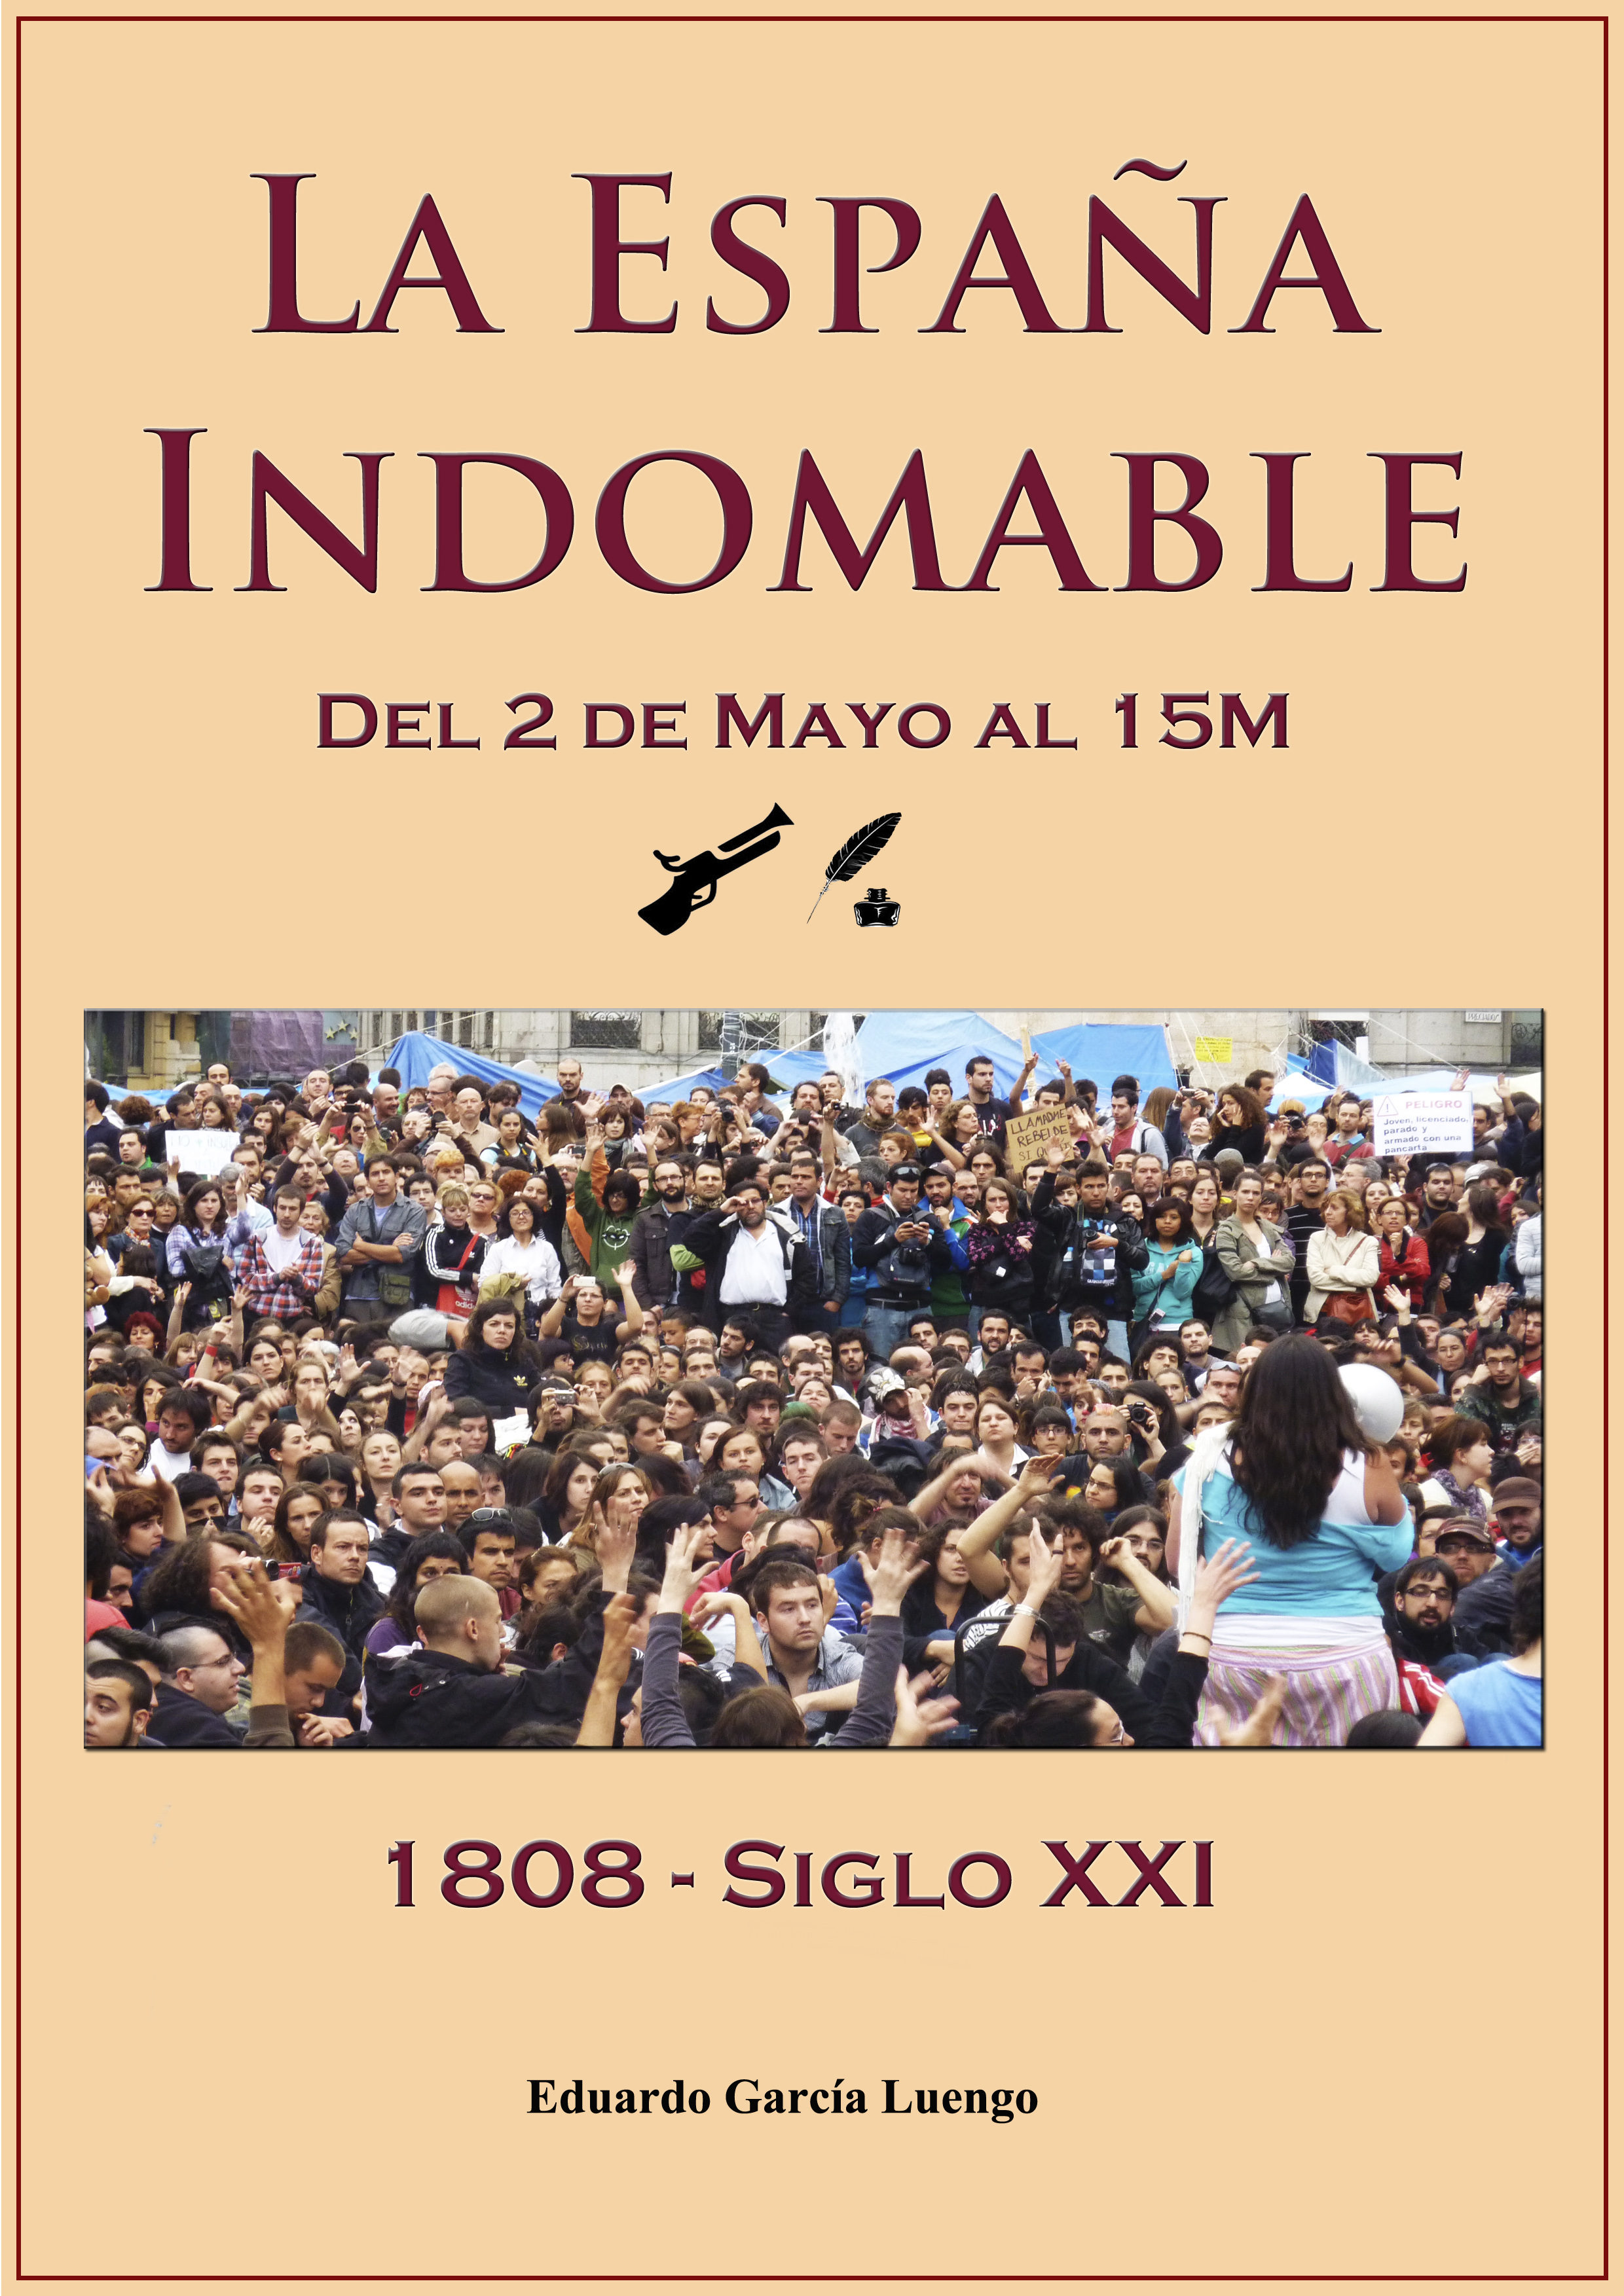 Indomable Libro La EspaÑa Indomable Ebook Descargar Libro Pdf O Epub 9788483263471